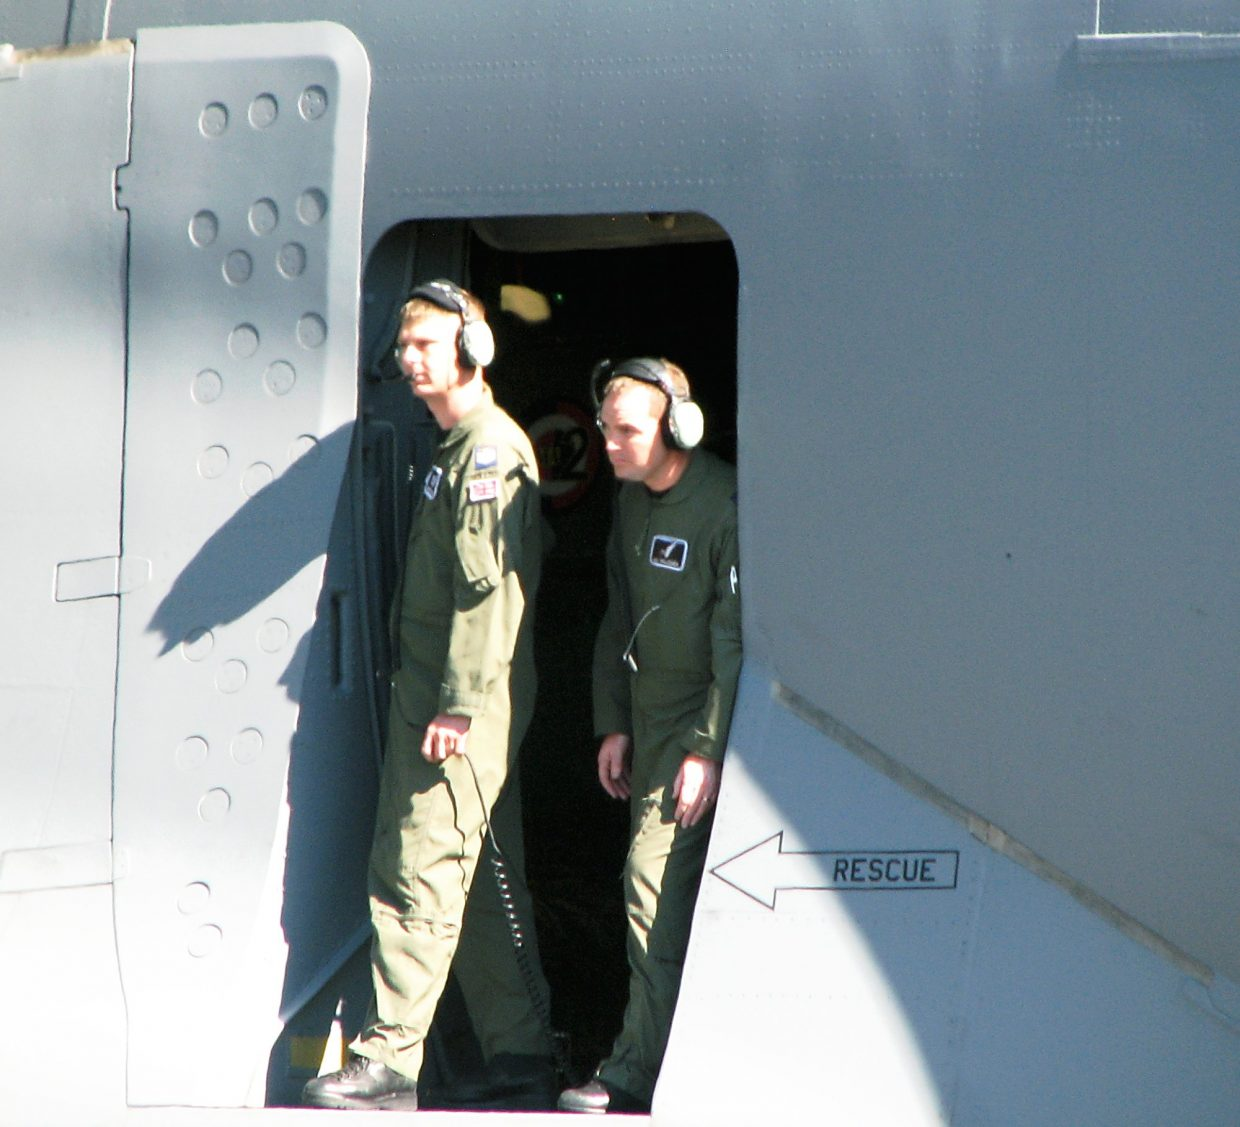 The cargo plane's crew emerges after landing in Rifle.